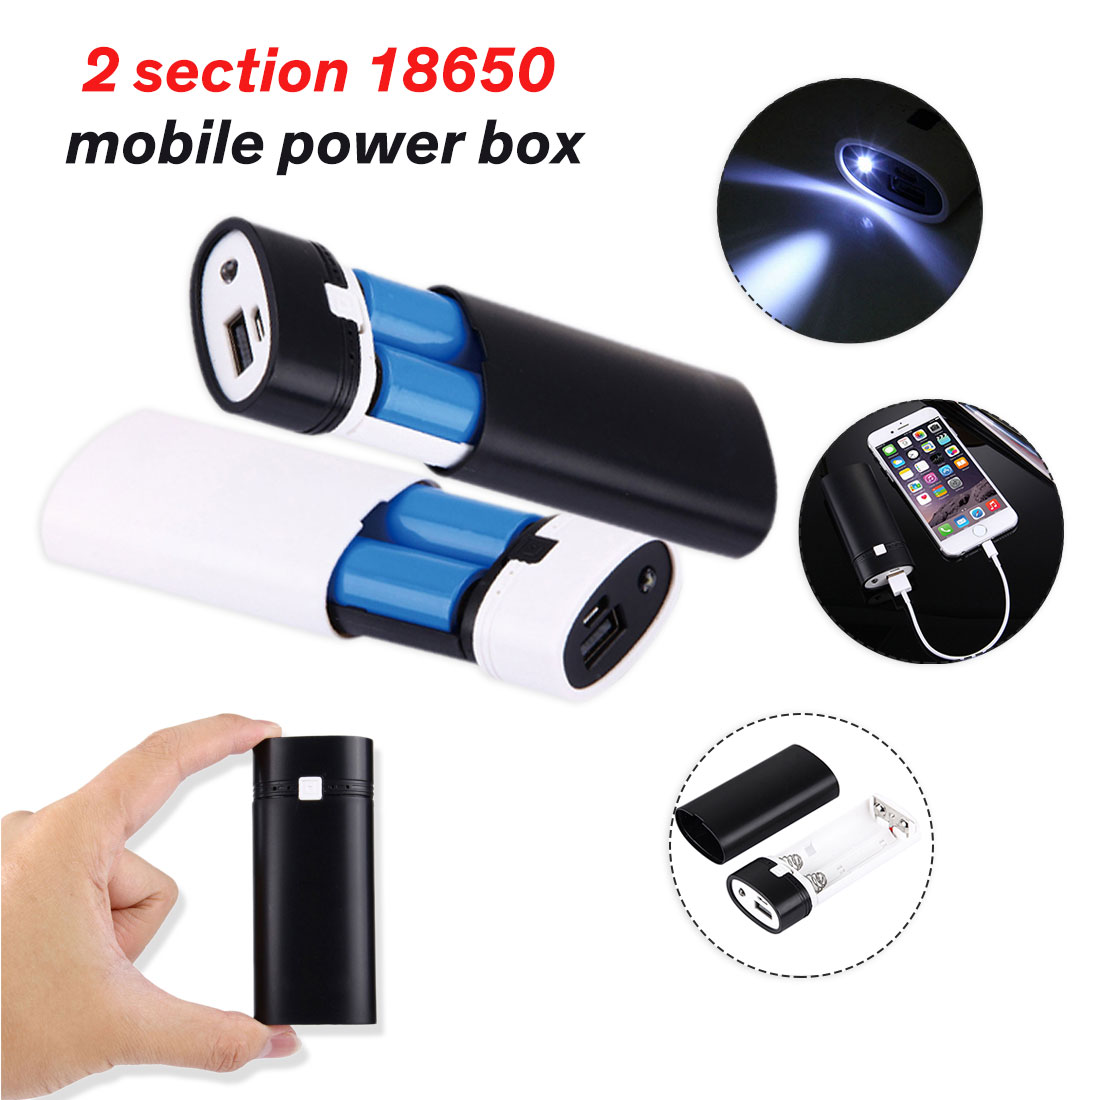 2X 18650 USB Power Bank Battery Charger Case Black DIY Box For Phone Powerbank For IPhone Portable Charging External Battery